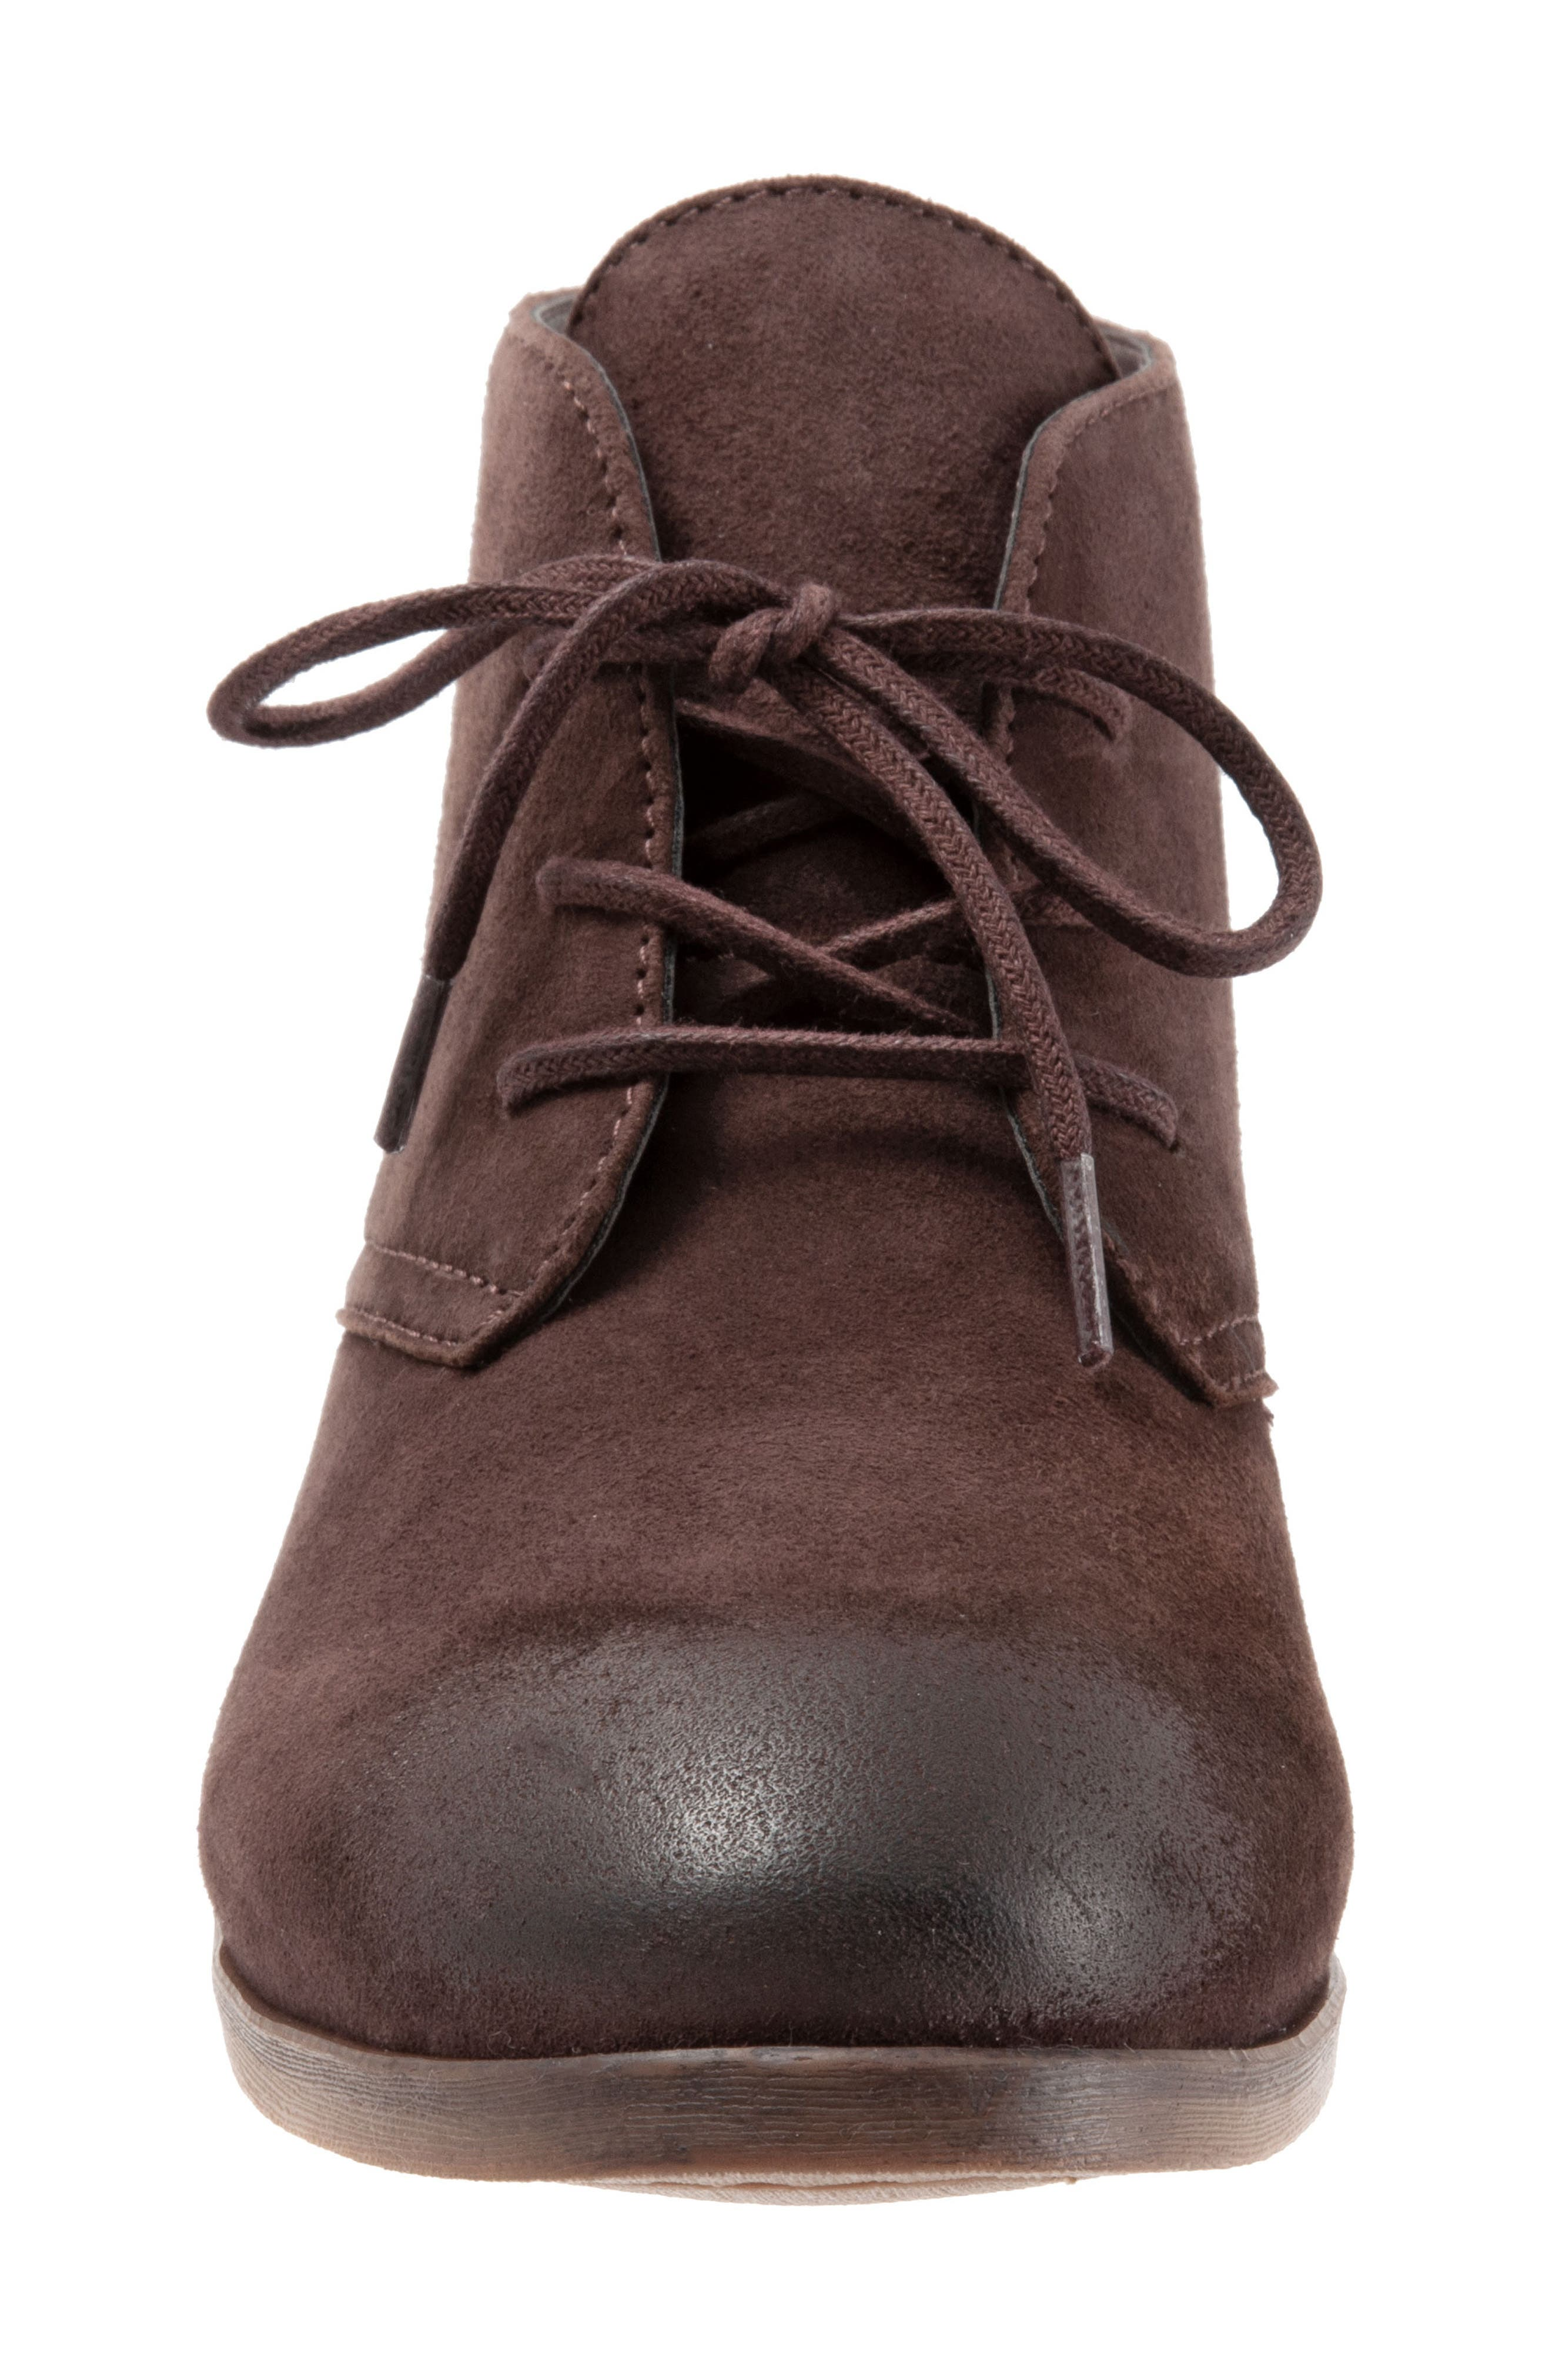 'Ramsey' Chukka Boot,                             Alternate thumbnail 4, color,                             DARK BROWN LEATHER